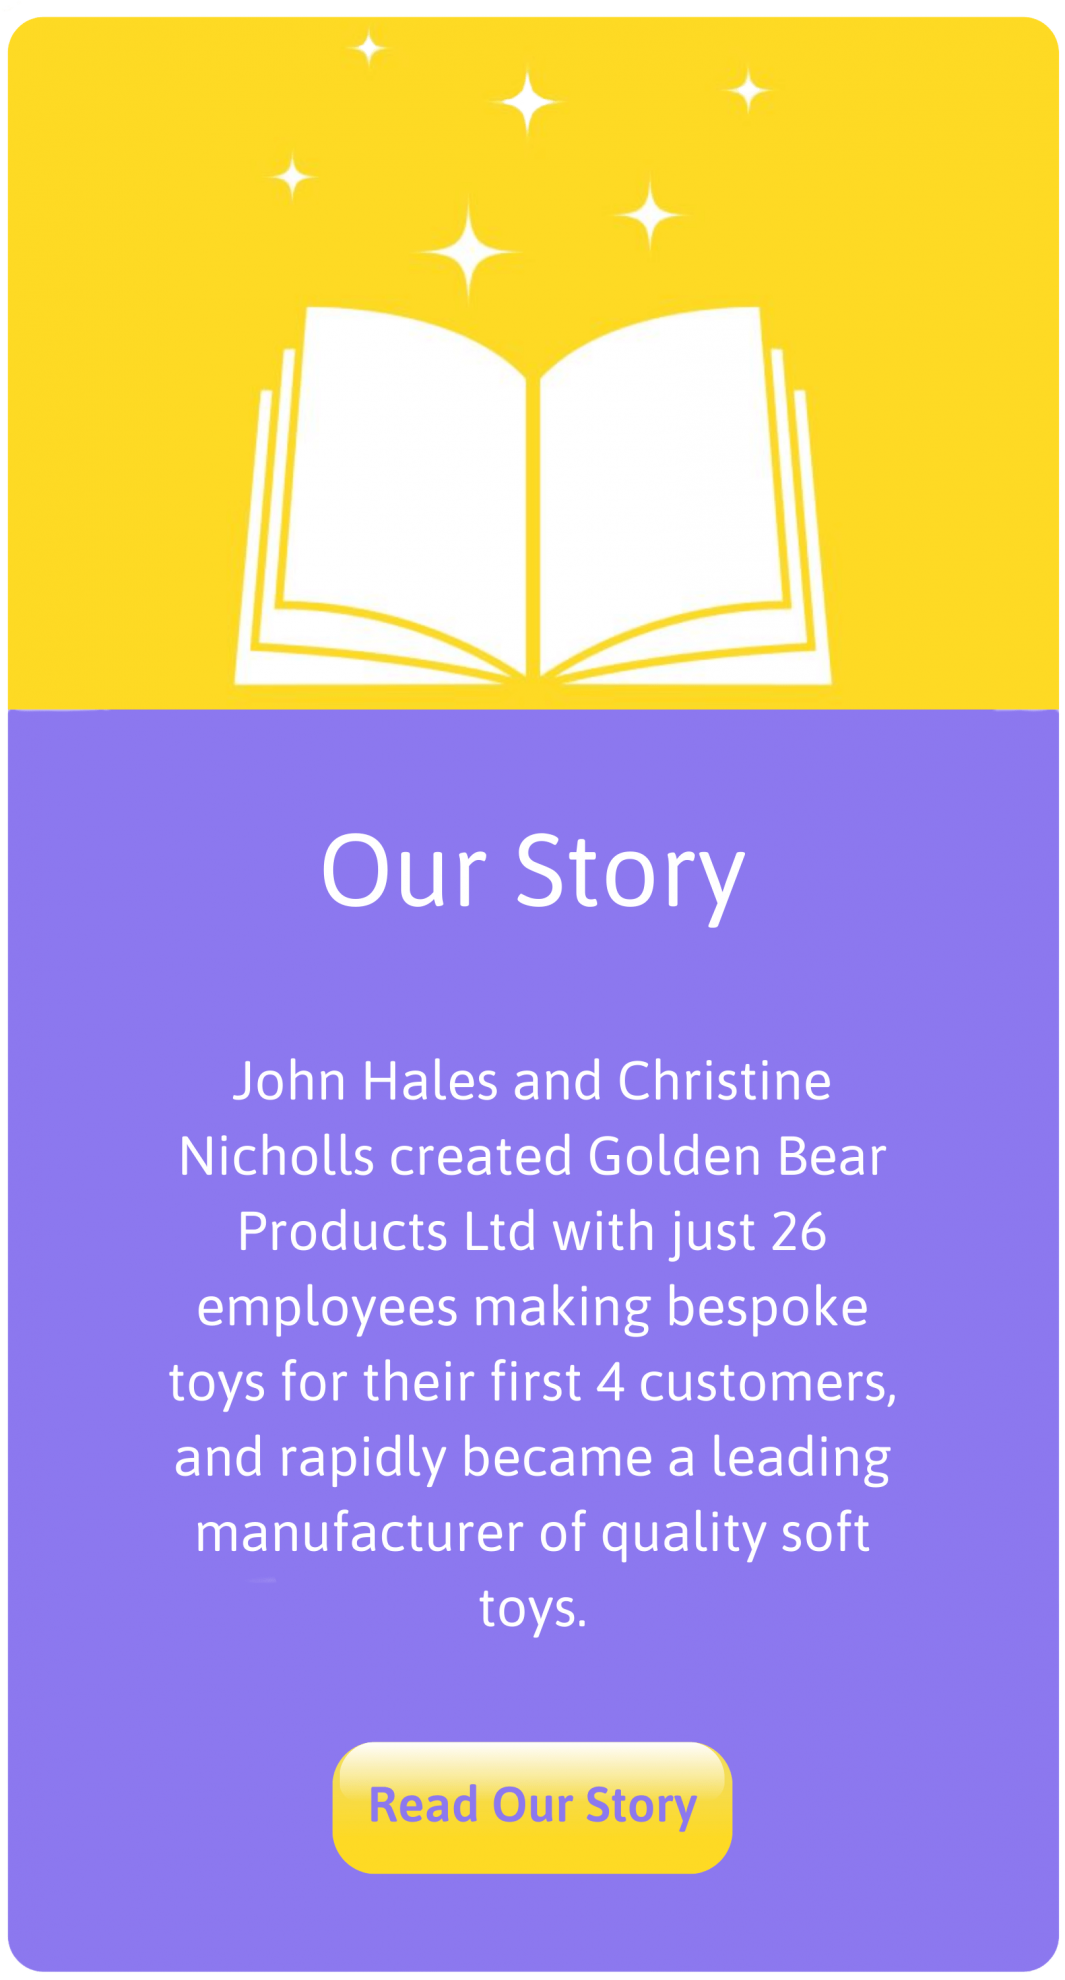 John Hales and Christine Nicholls founded Golden Bear Toys in Shropshire after their success with the Chad Valley Company